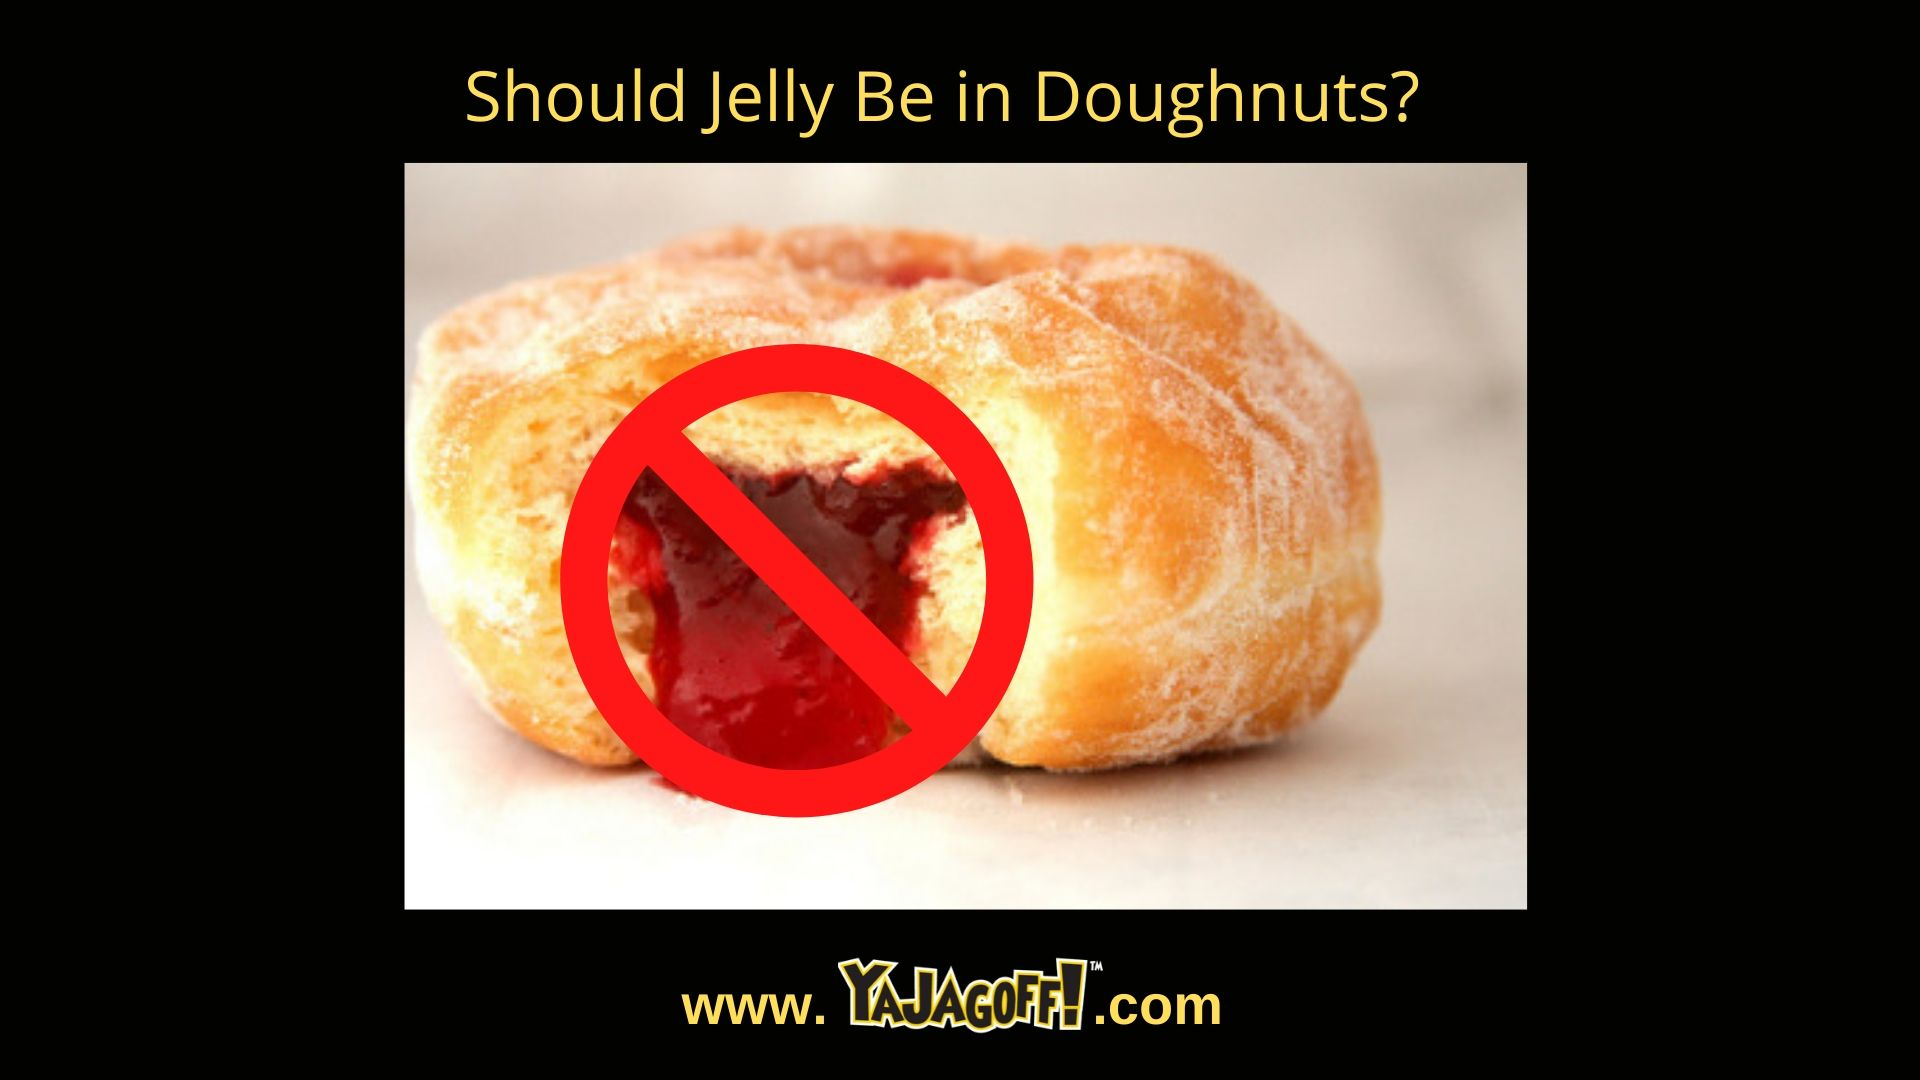 YaJagoff Blog and Jellie Doughnuts